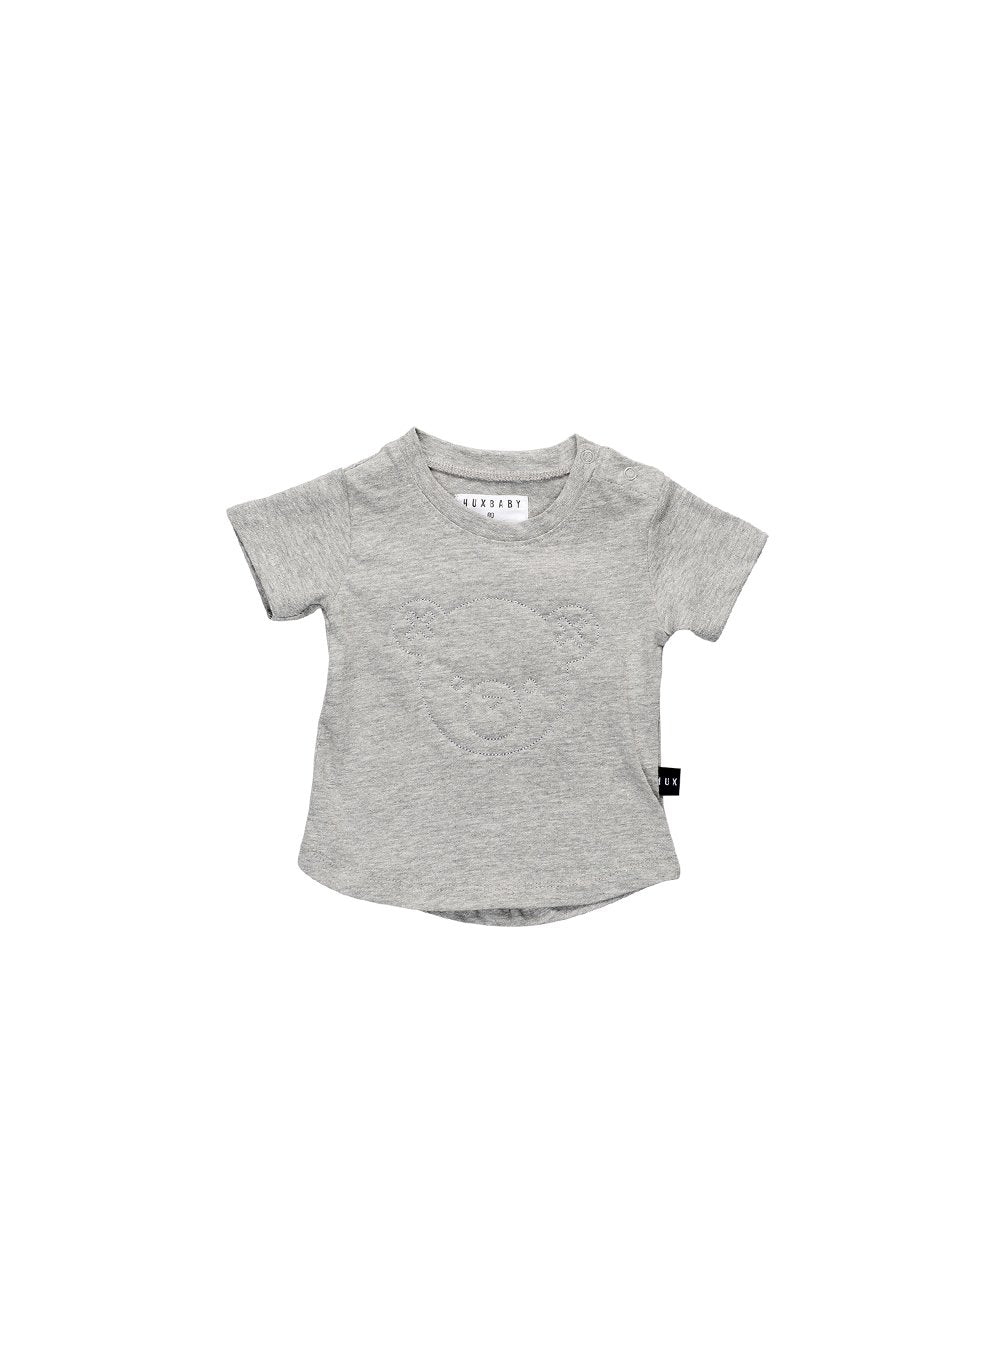 HUXBABY STITCH BEAR DB T-SHIRT GREY MARLE-t-shirt-HUXBABY-Billie & Axel, Montreal, Canada & USA